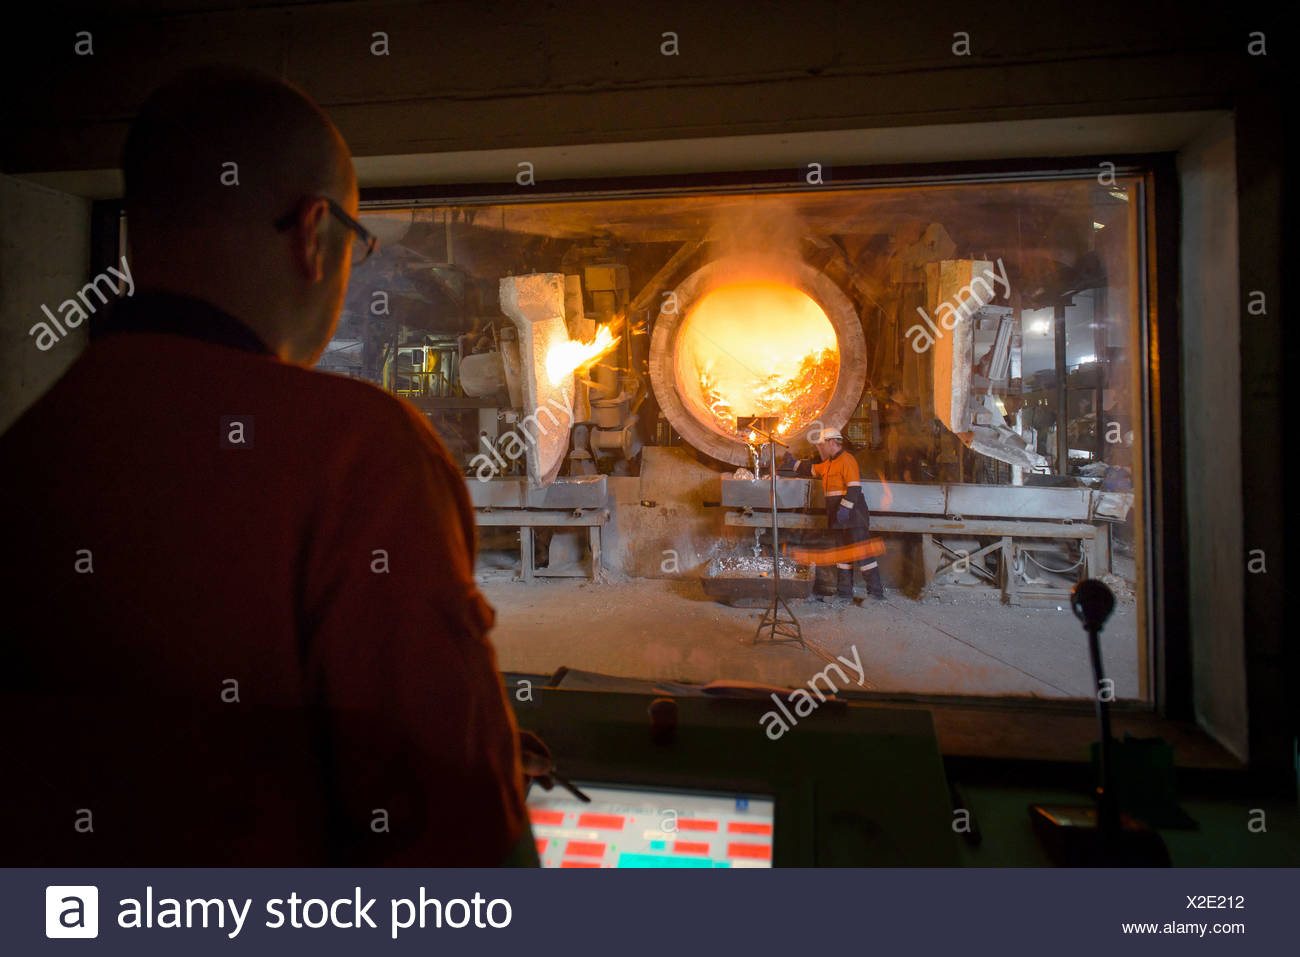 Monitoring furnace at aluminum recycling plant - Stock Image